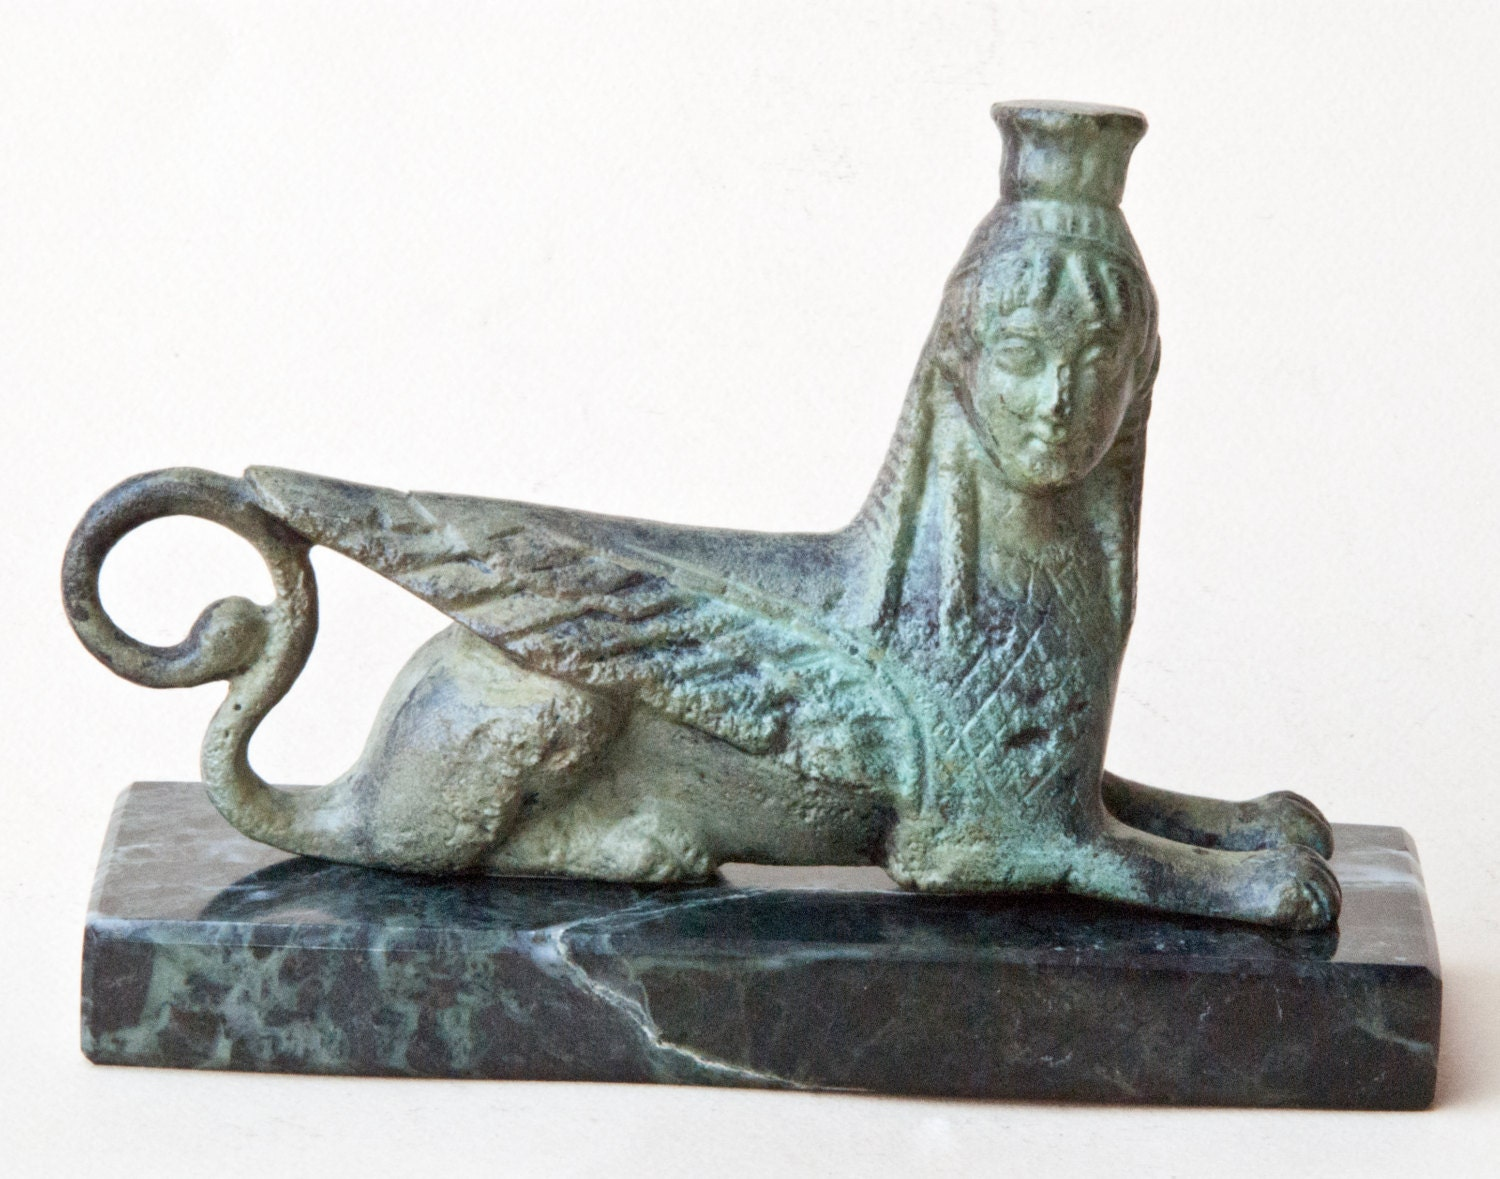 mythical sphinx bronze sculpture greek mythical creature ancient